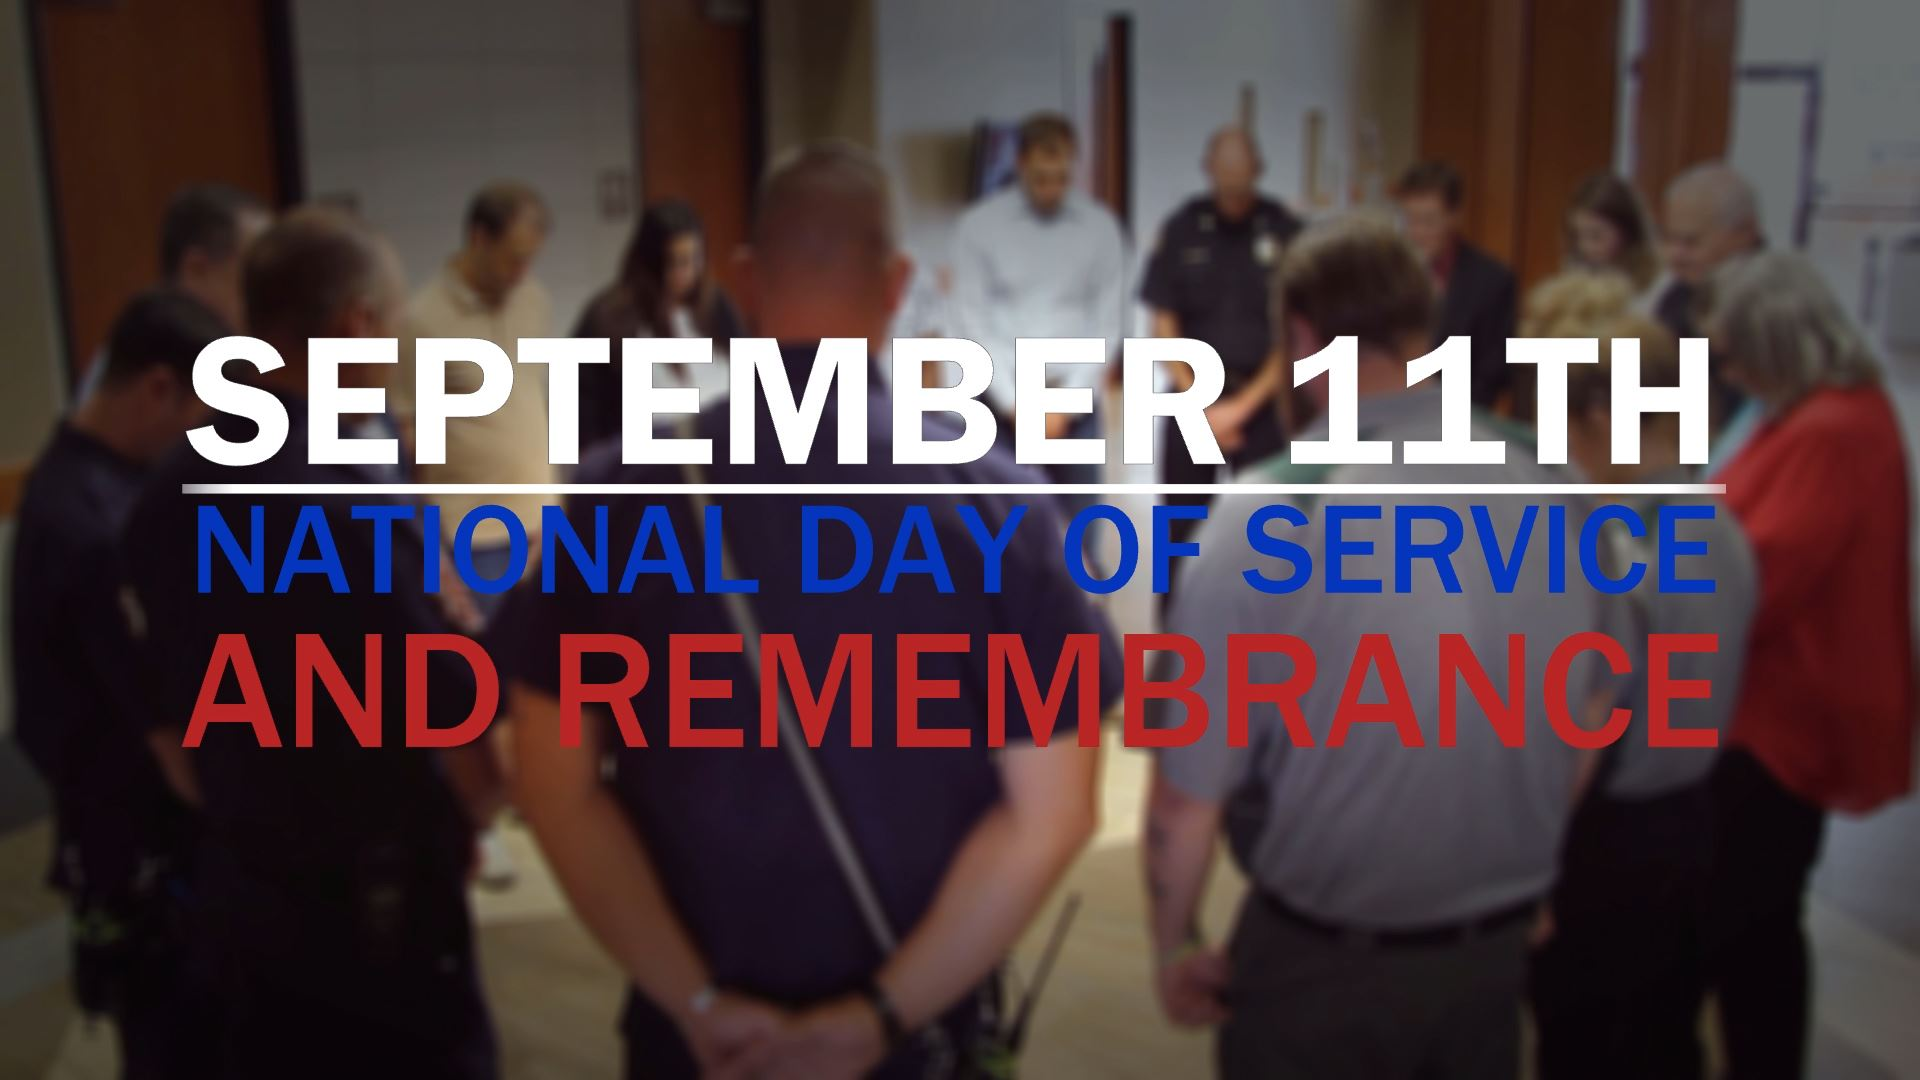 September 11th National Day of Service and Remembrance.